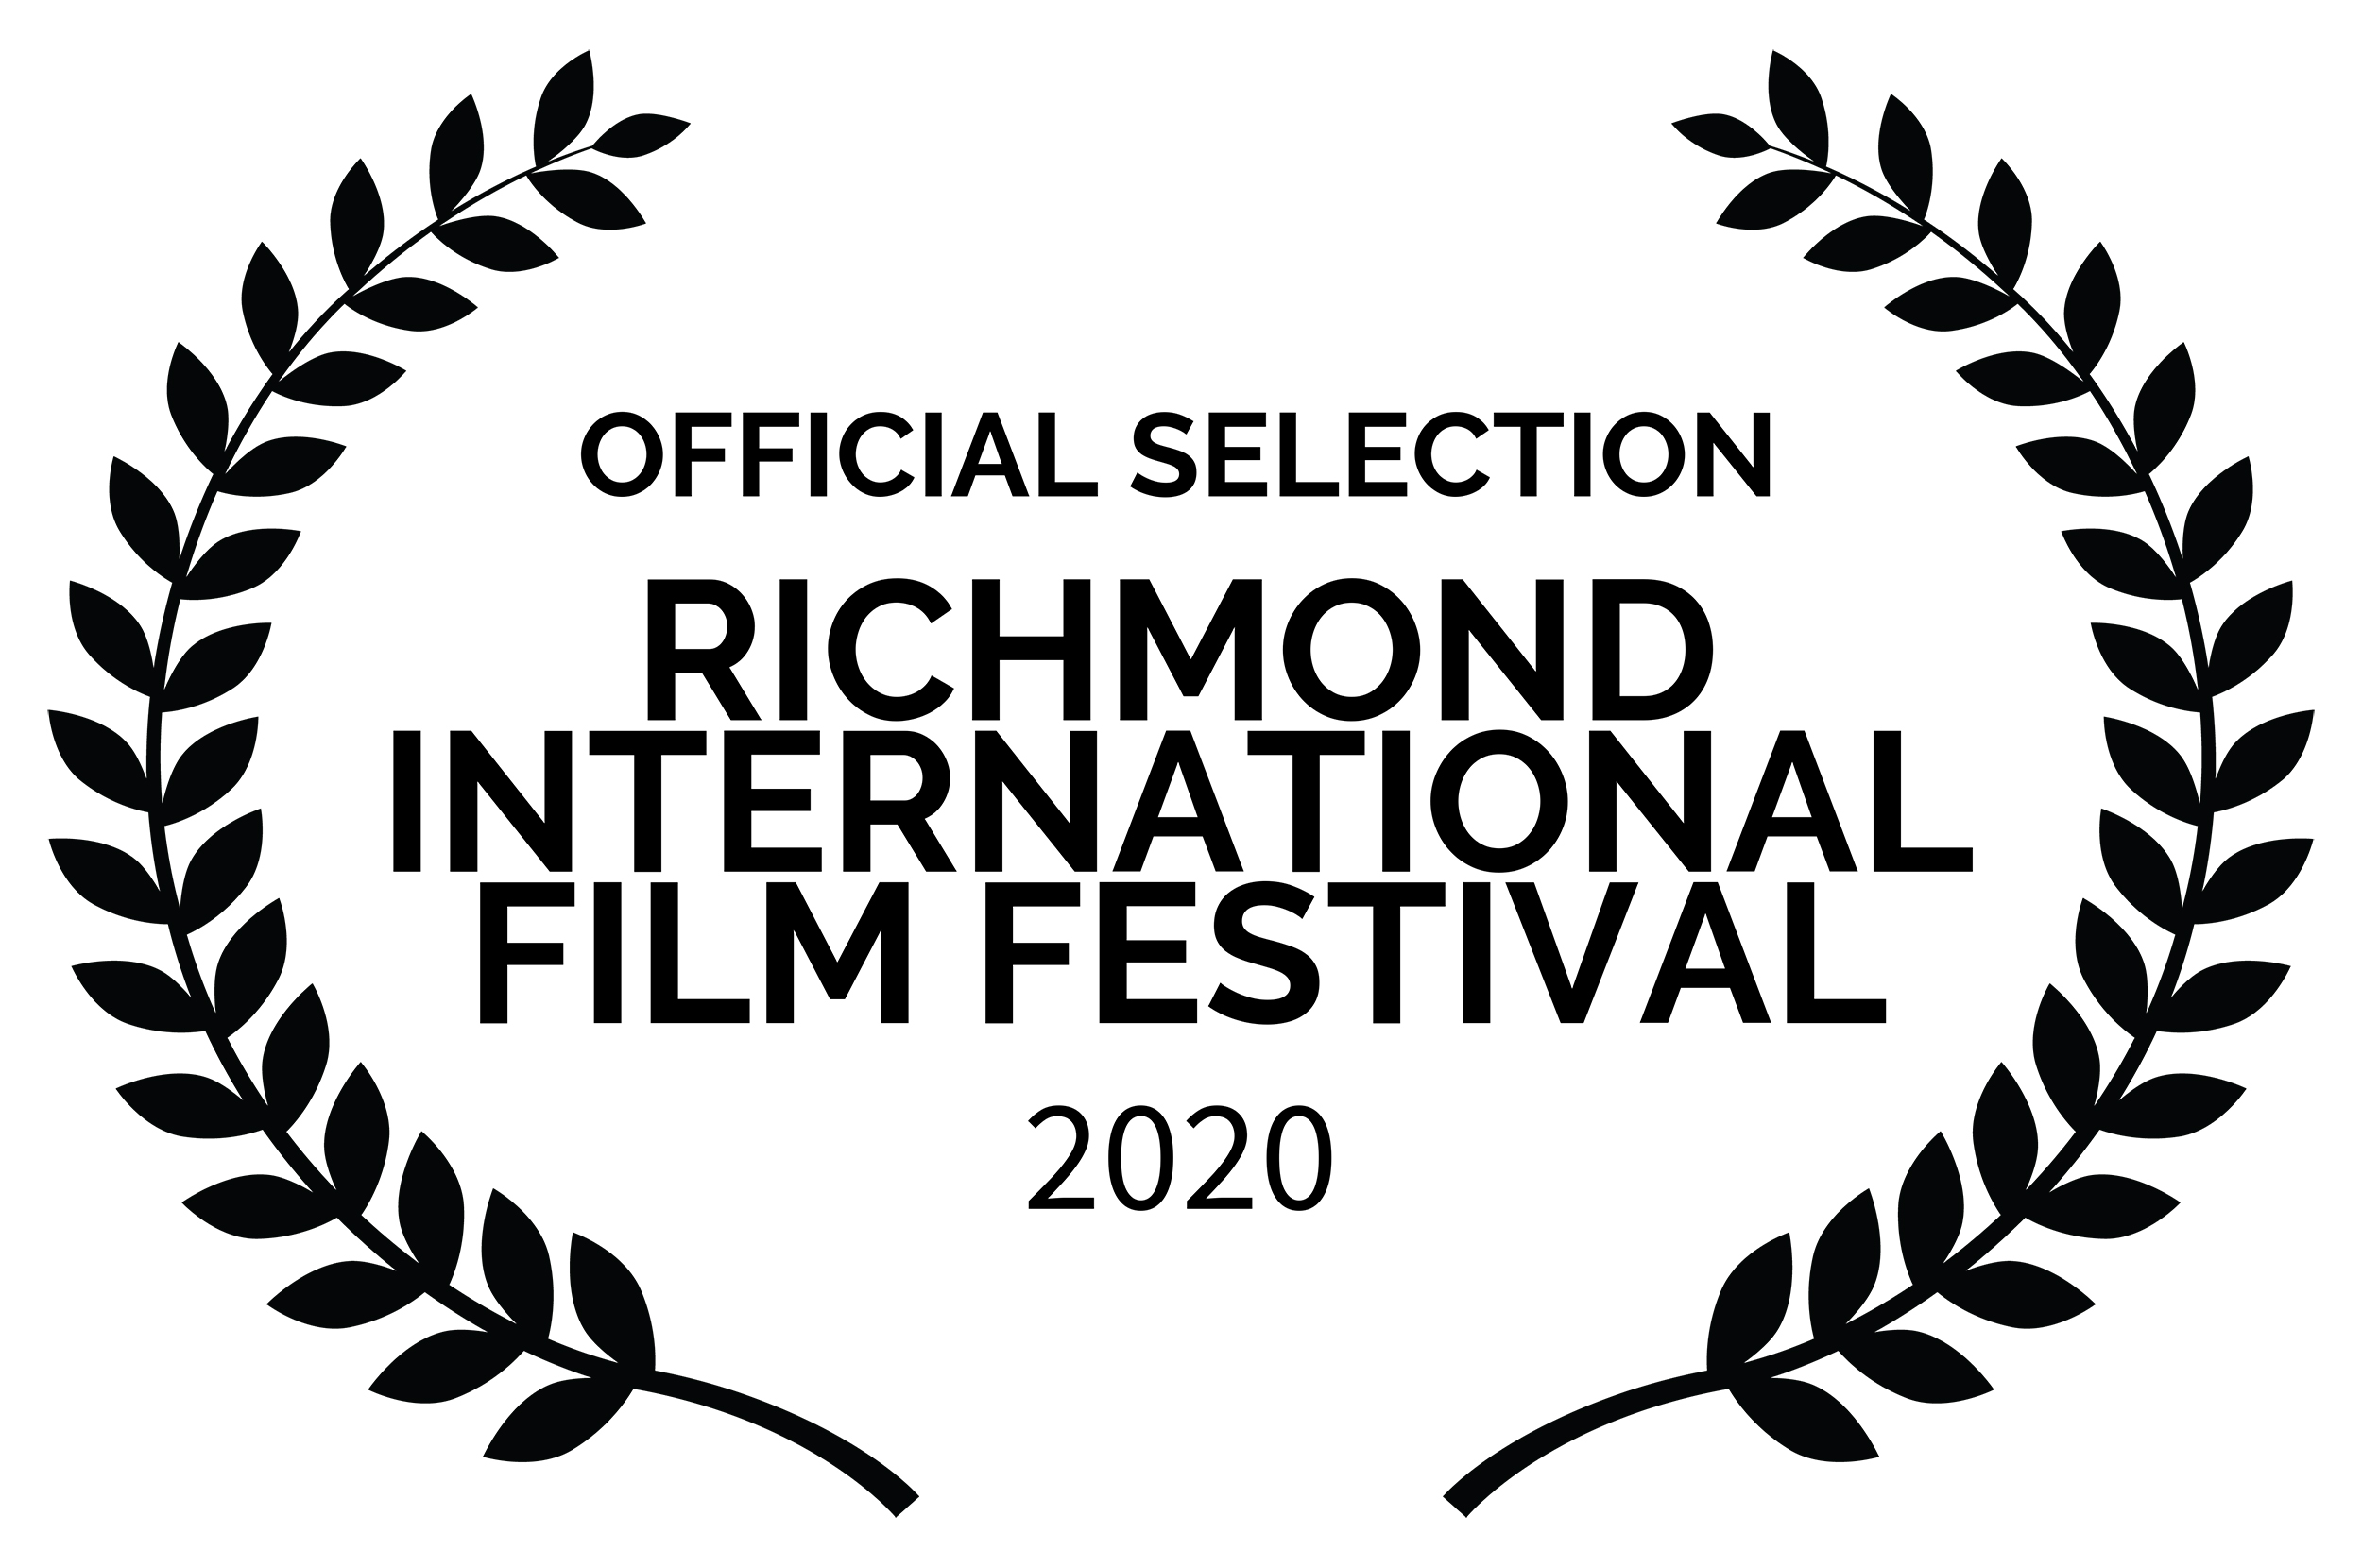 OFFICIALSELECTION-RICHMONDINTERNATIONALFILMFESTIVAL-2020_small